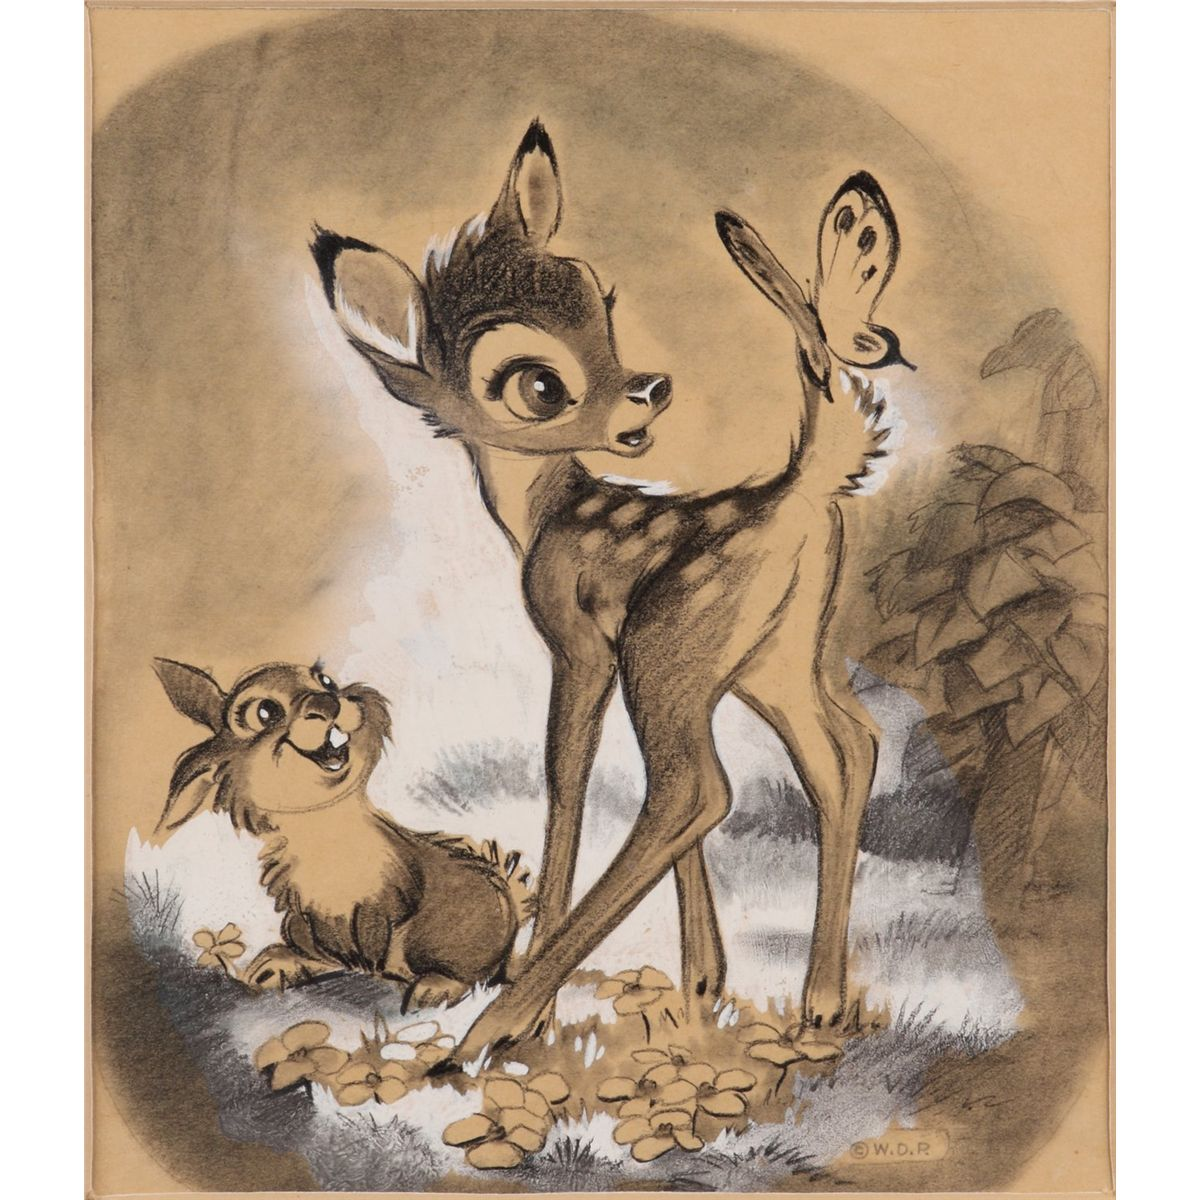 1200x1200 Bambi Amp Thumper Charcoal Drawing For Disney Publicity Card